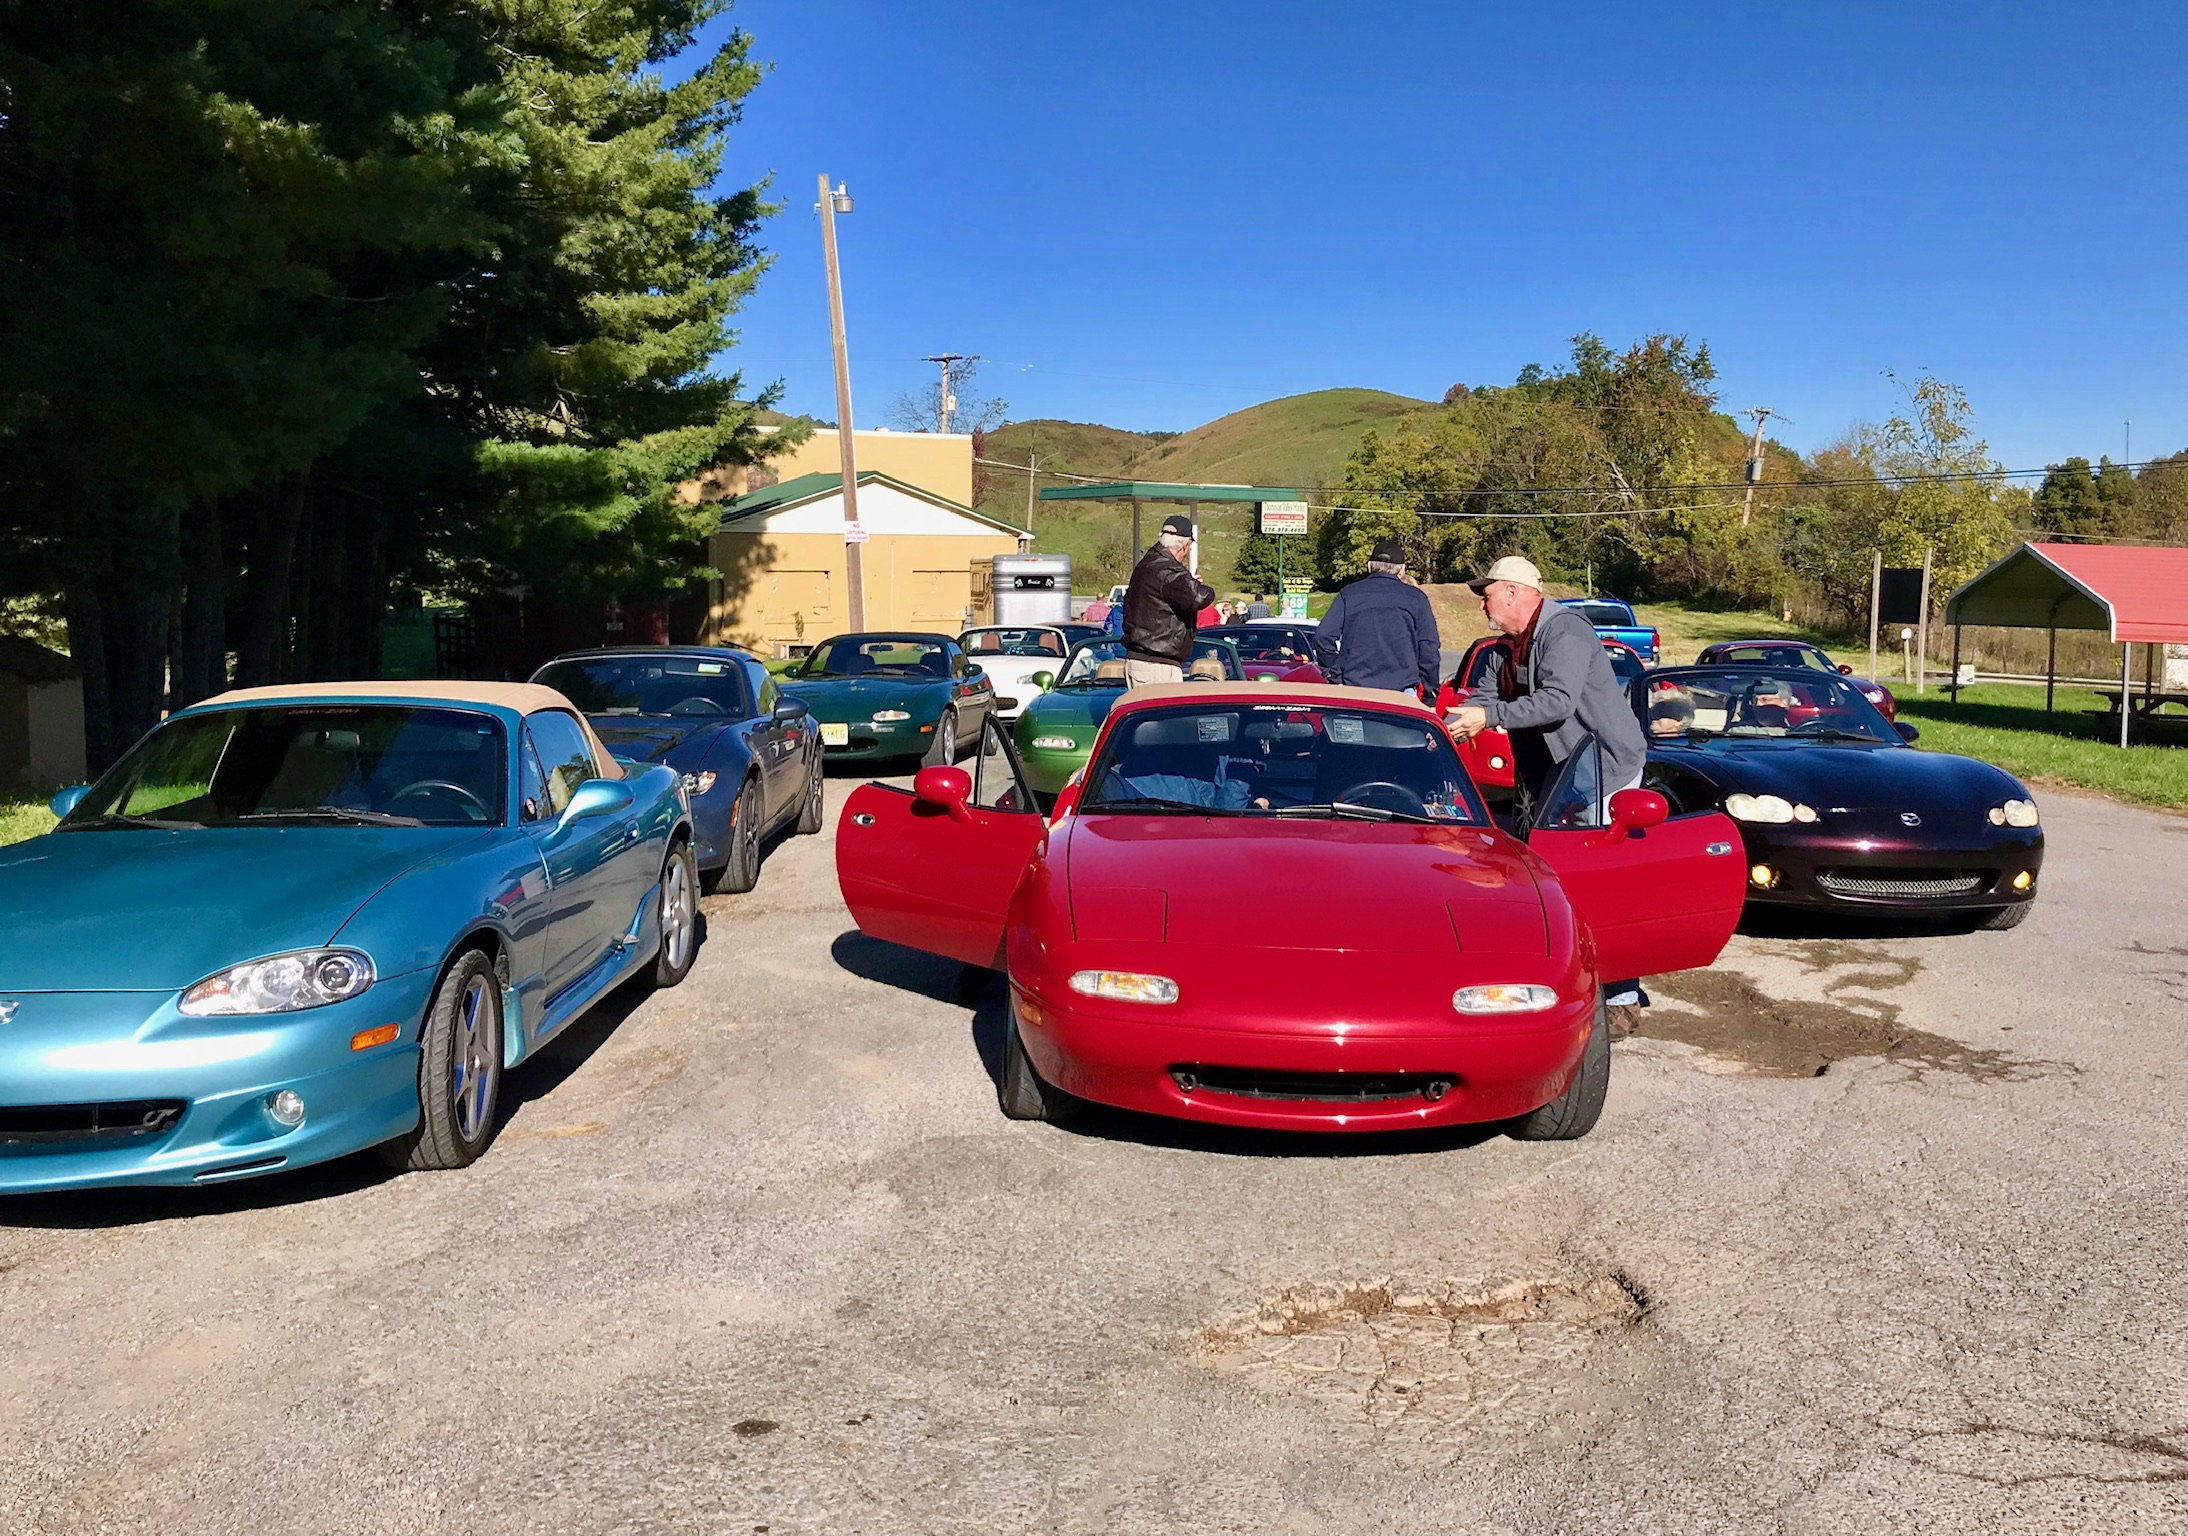 After driving the Back of the Dragon, we stopped at Thompson Valley Market.